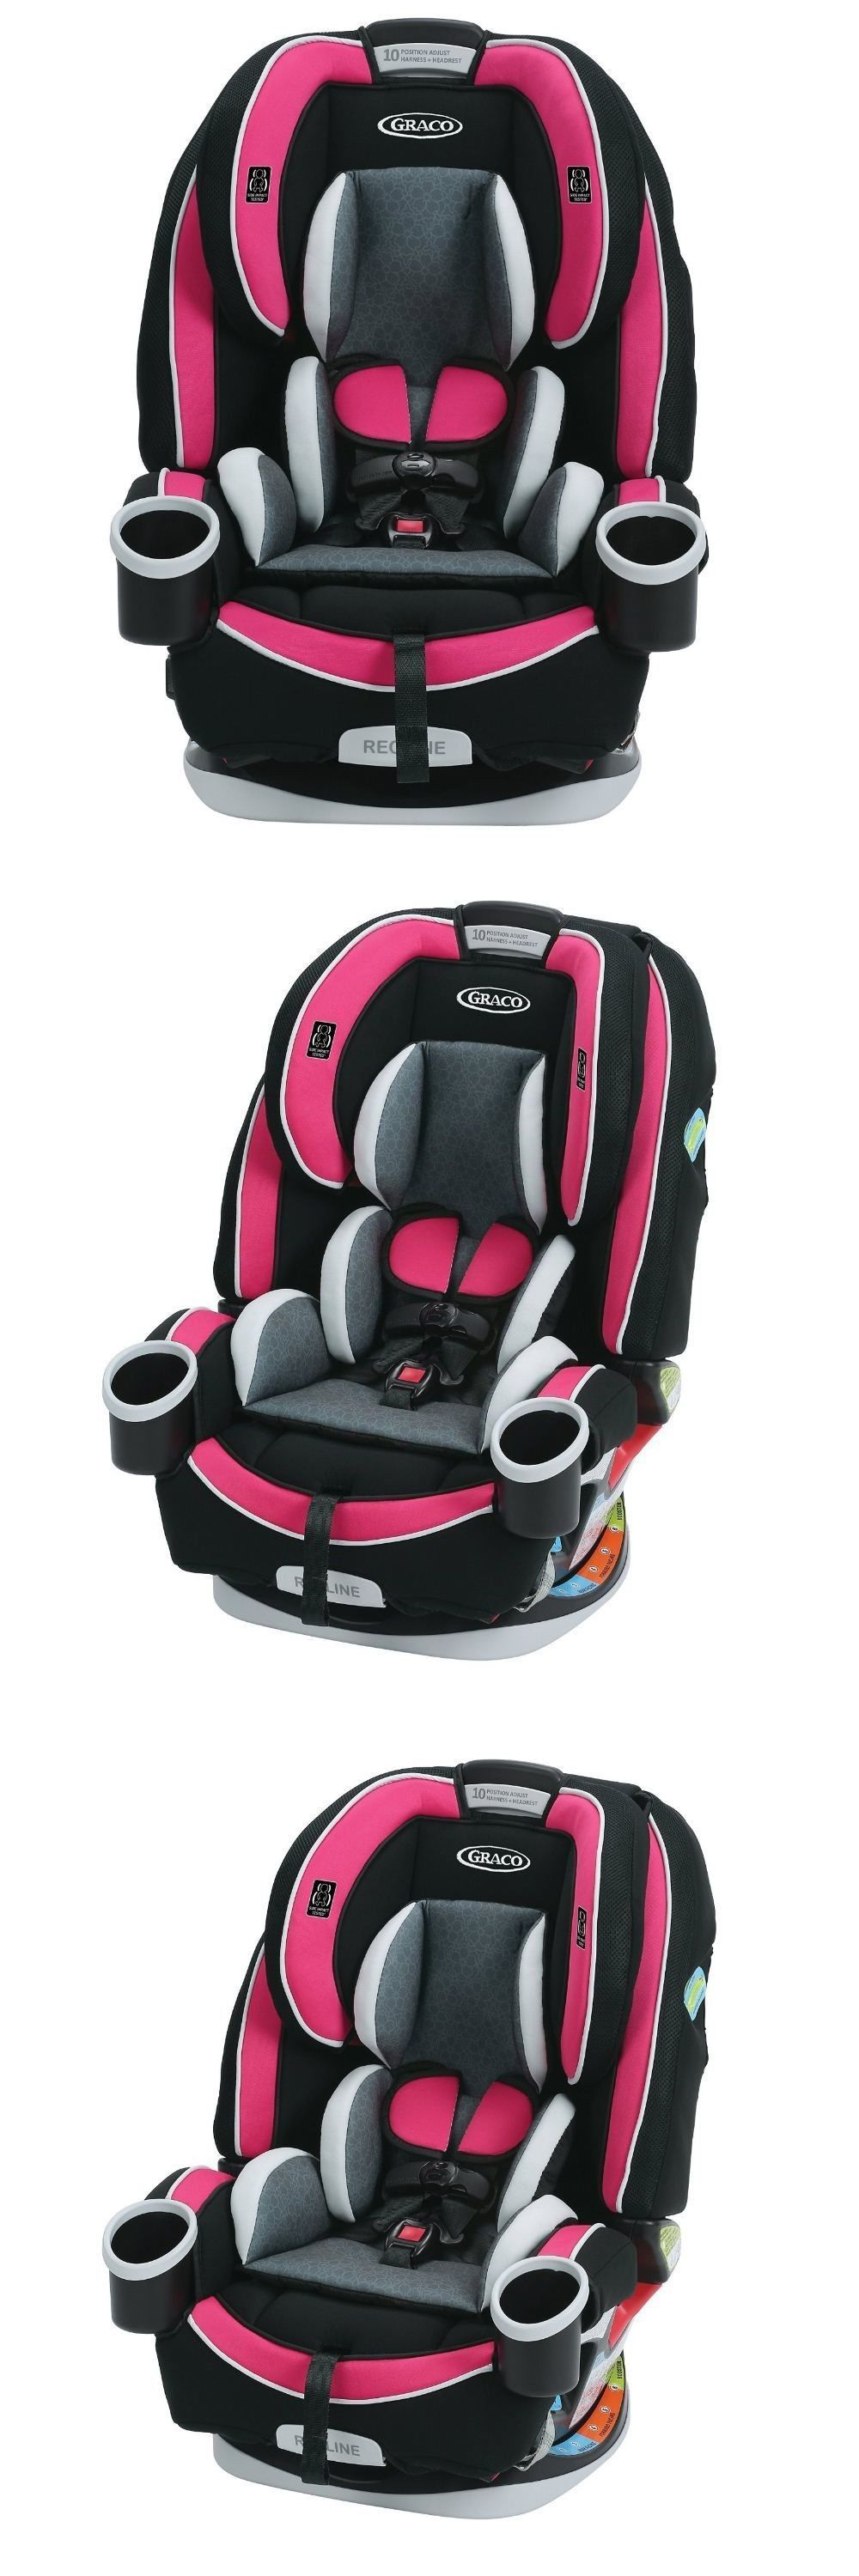 Convertible Car Seat 5 40lbs 66695 Graco 4Ever All In One Azalea BUY IT NOW ONLY 25619 On EBay